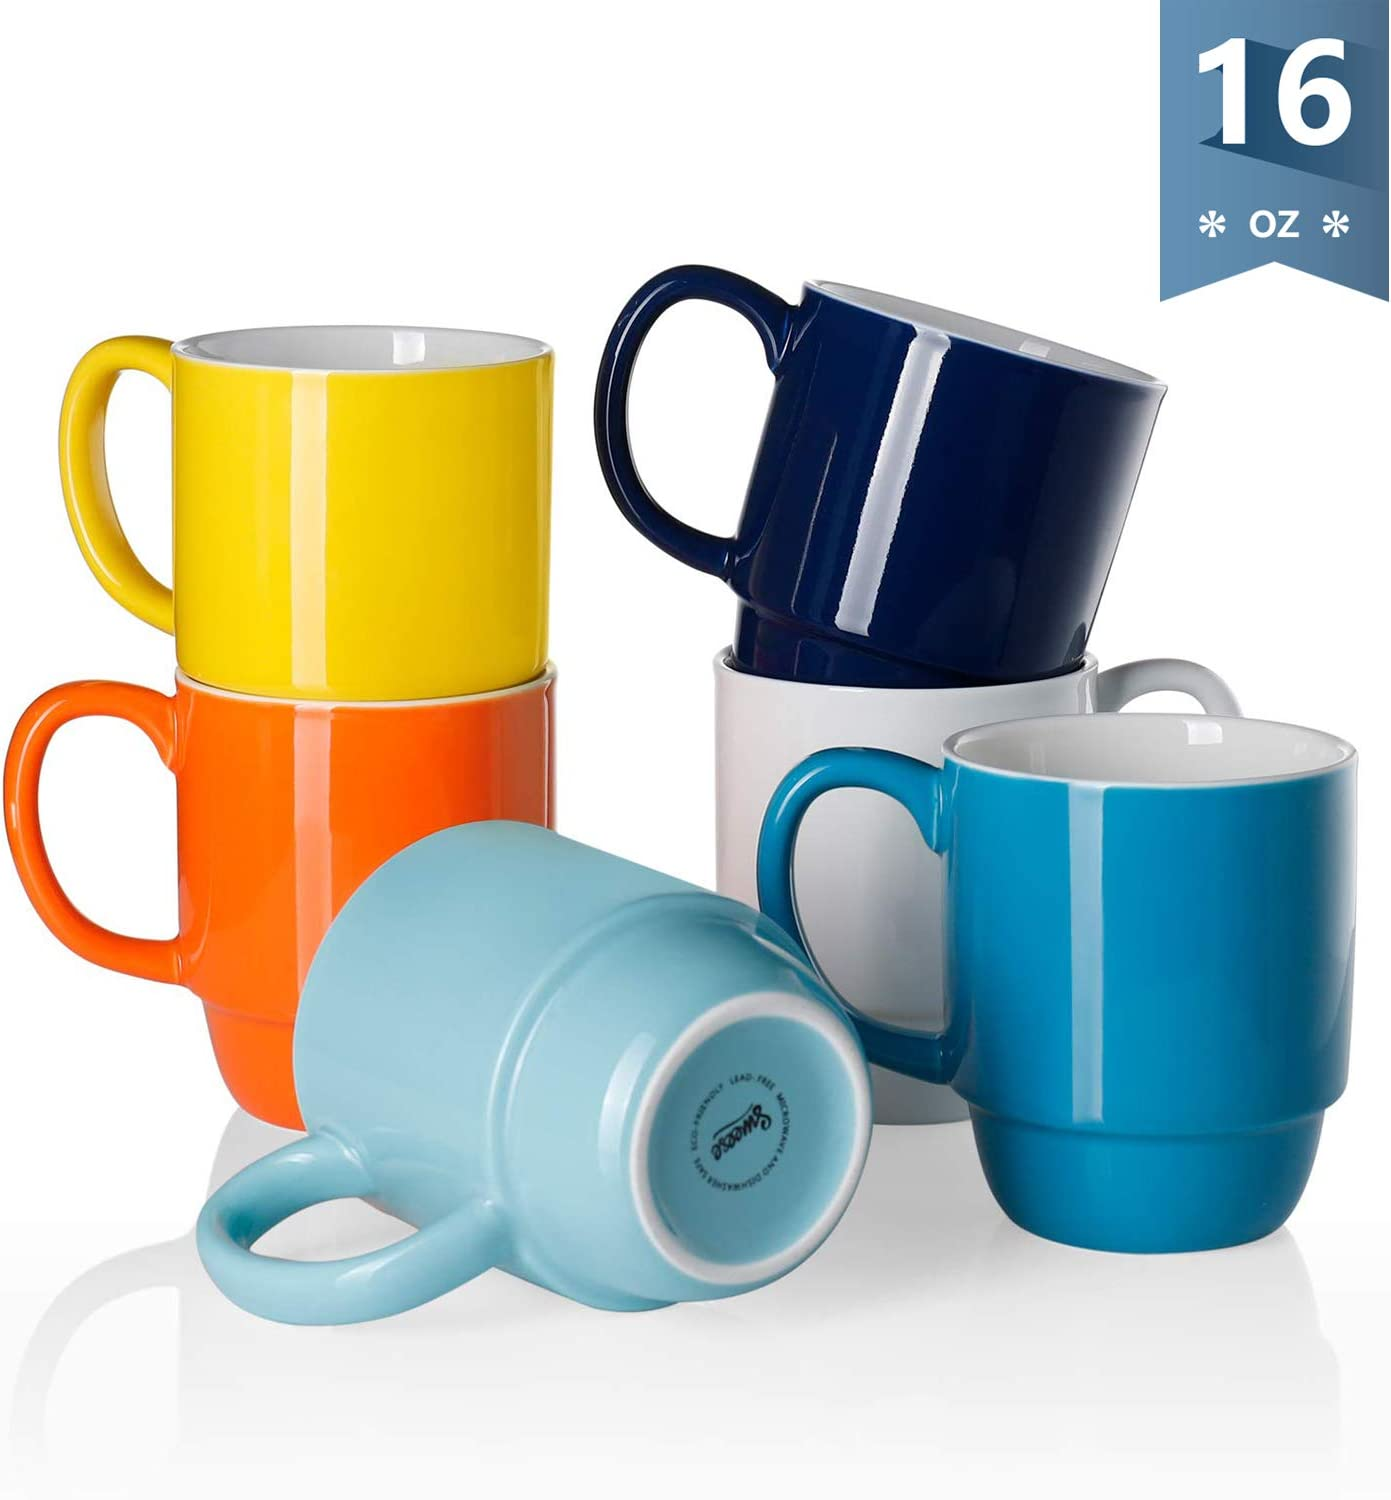 Sweese 605.002 Porcelain Stackable Mug Set - 16 Ounce for Coffee, Tea, Cocoa and Mulled Drinks - Set of 6, Hot Assorted Colors